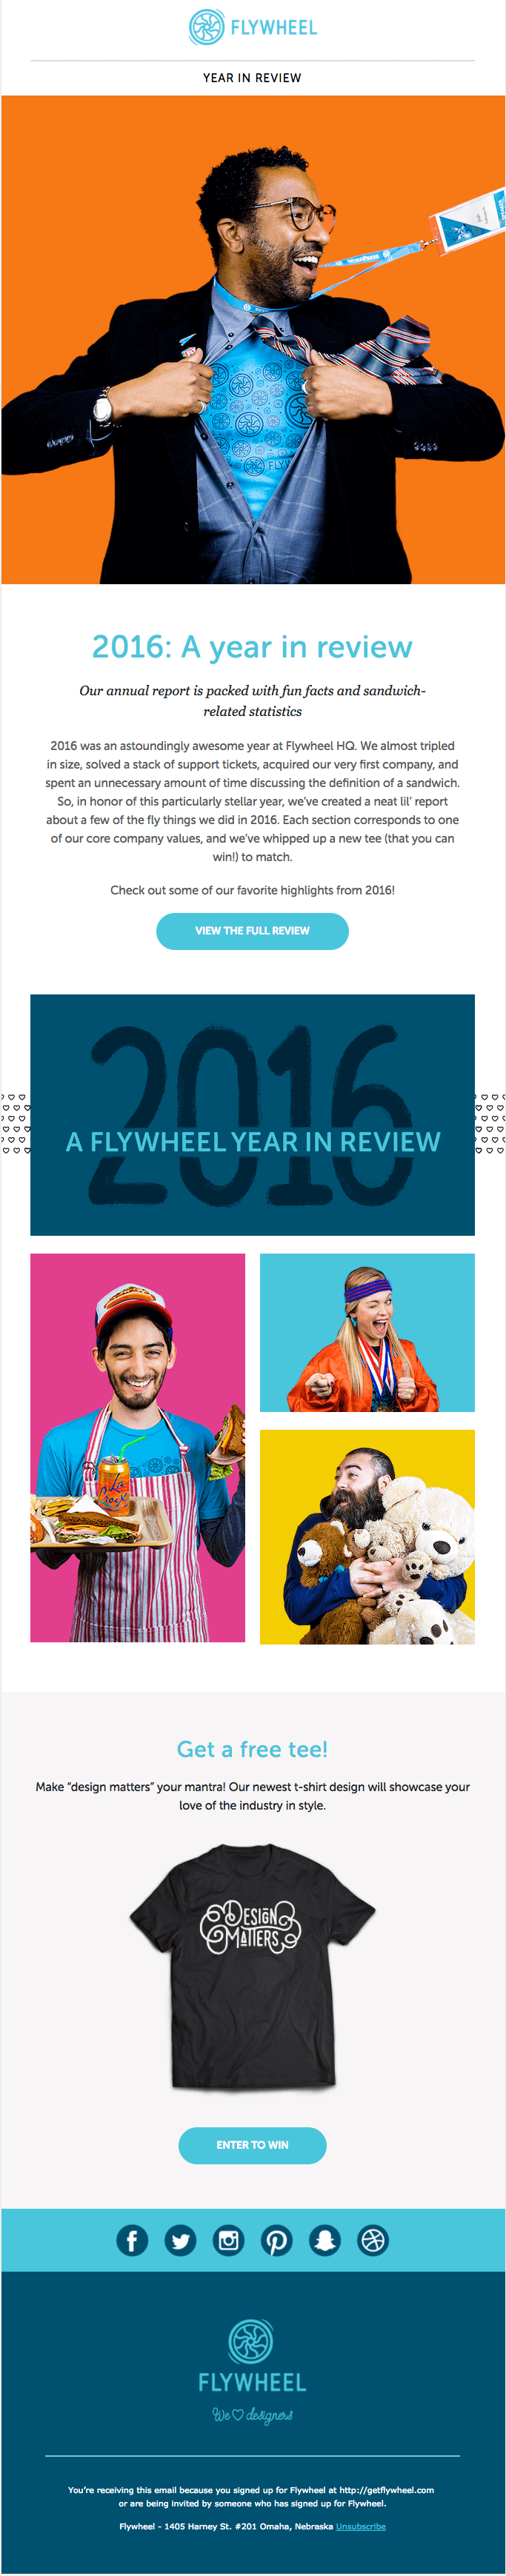 Fly Wheel New Year #Emma #NewYear #email #Marketing #ad